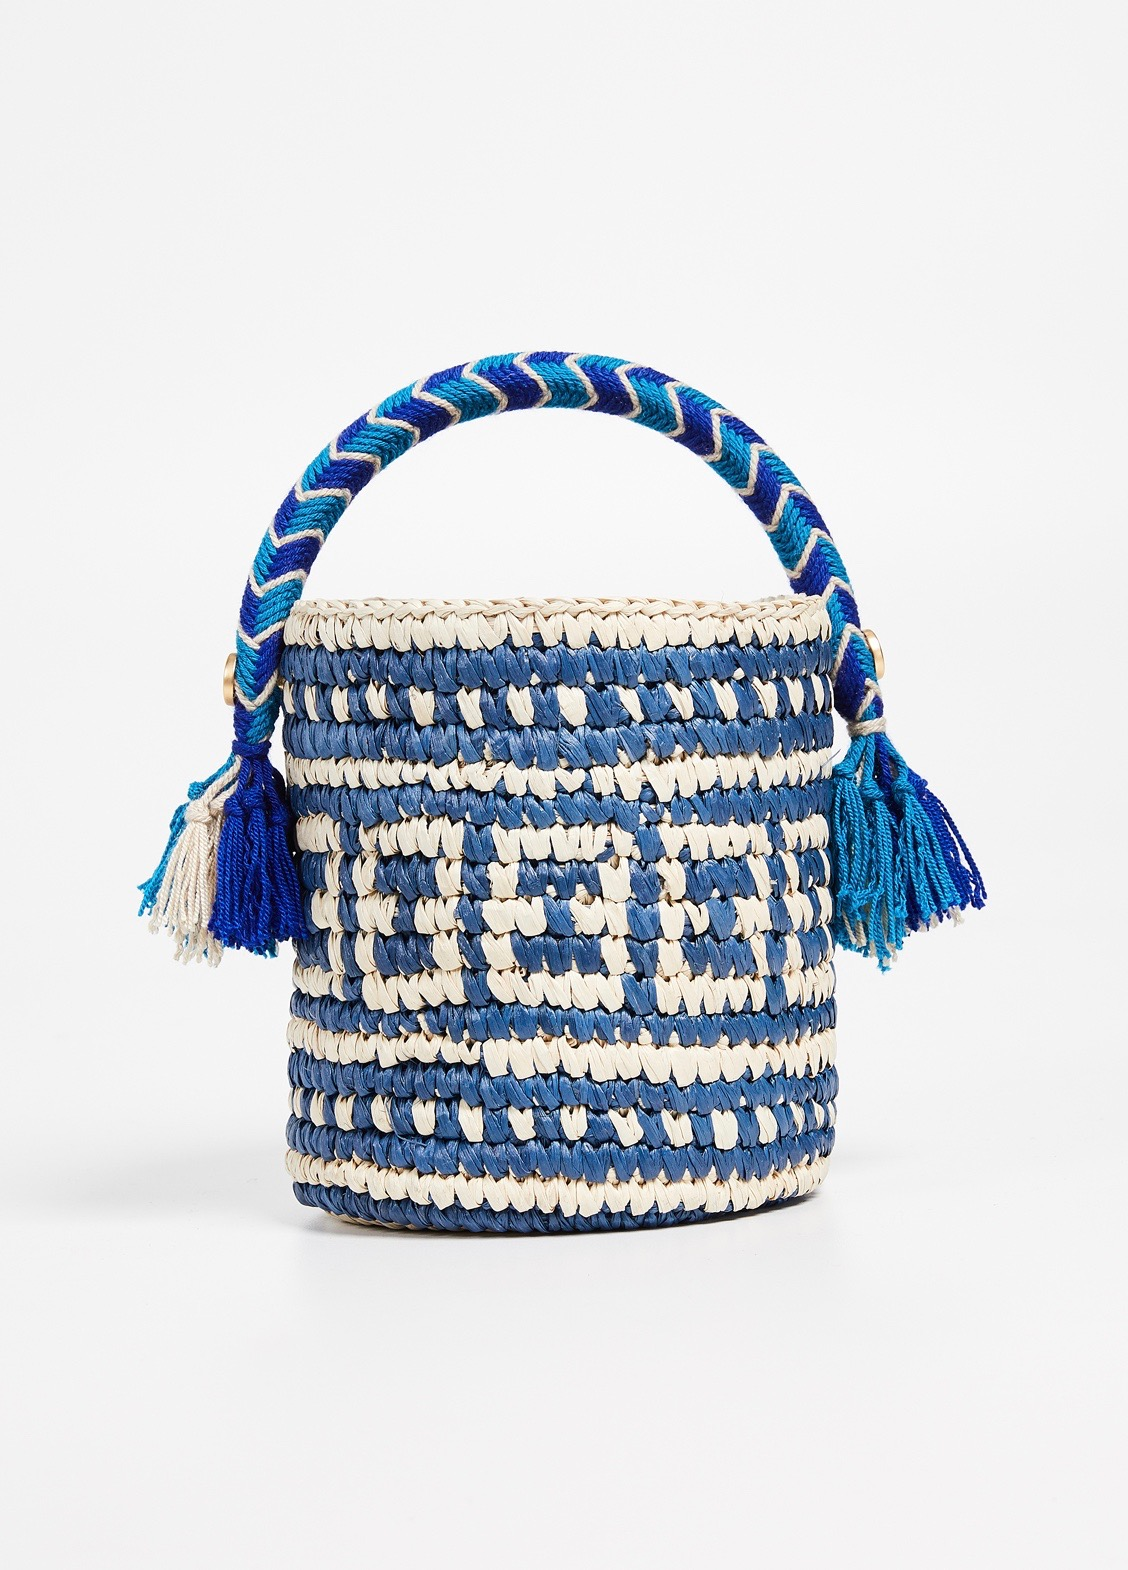 Blue Woven Straw Bucket Bag